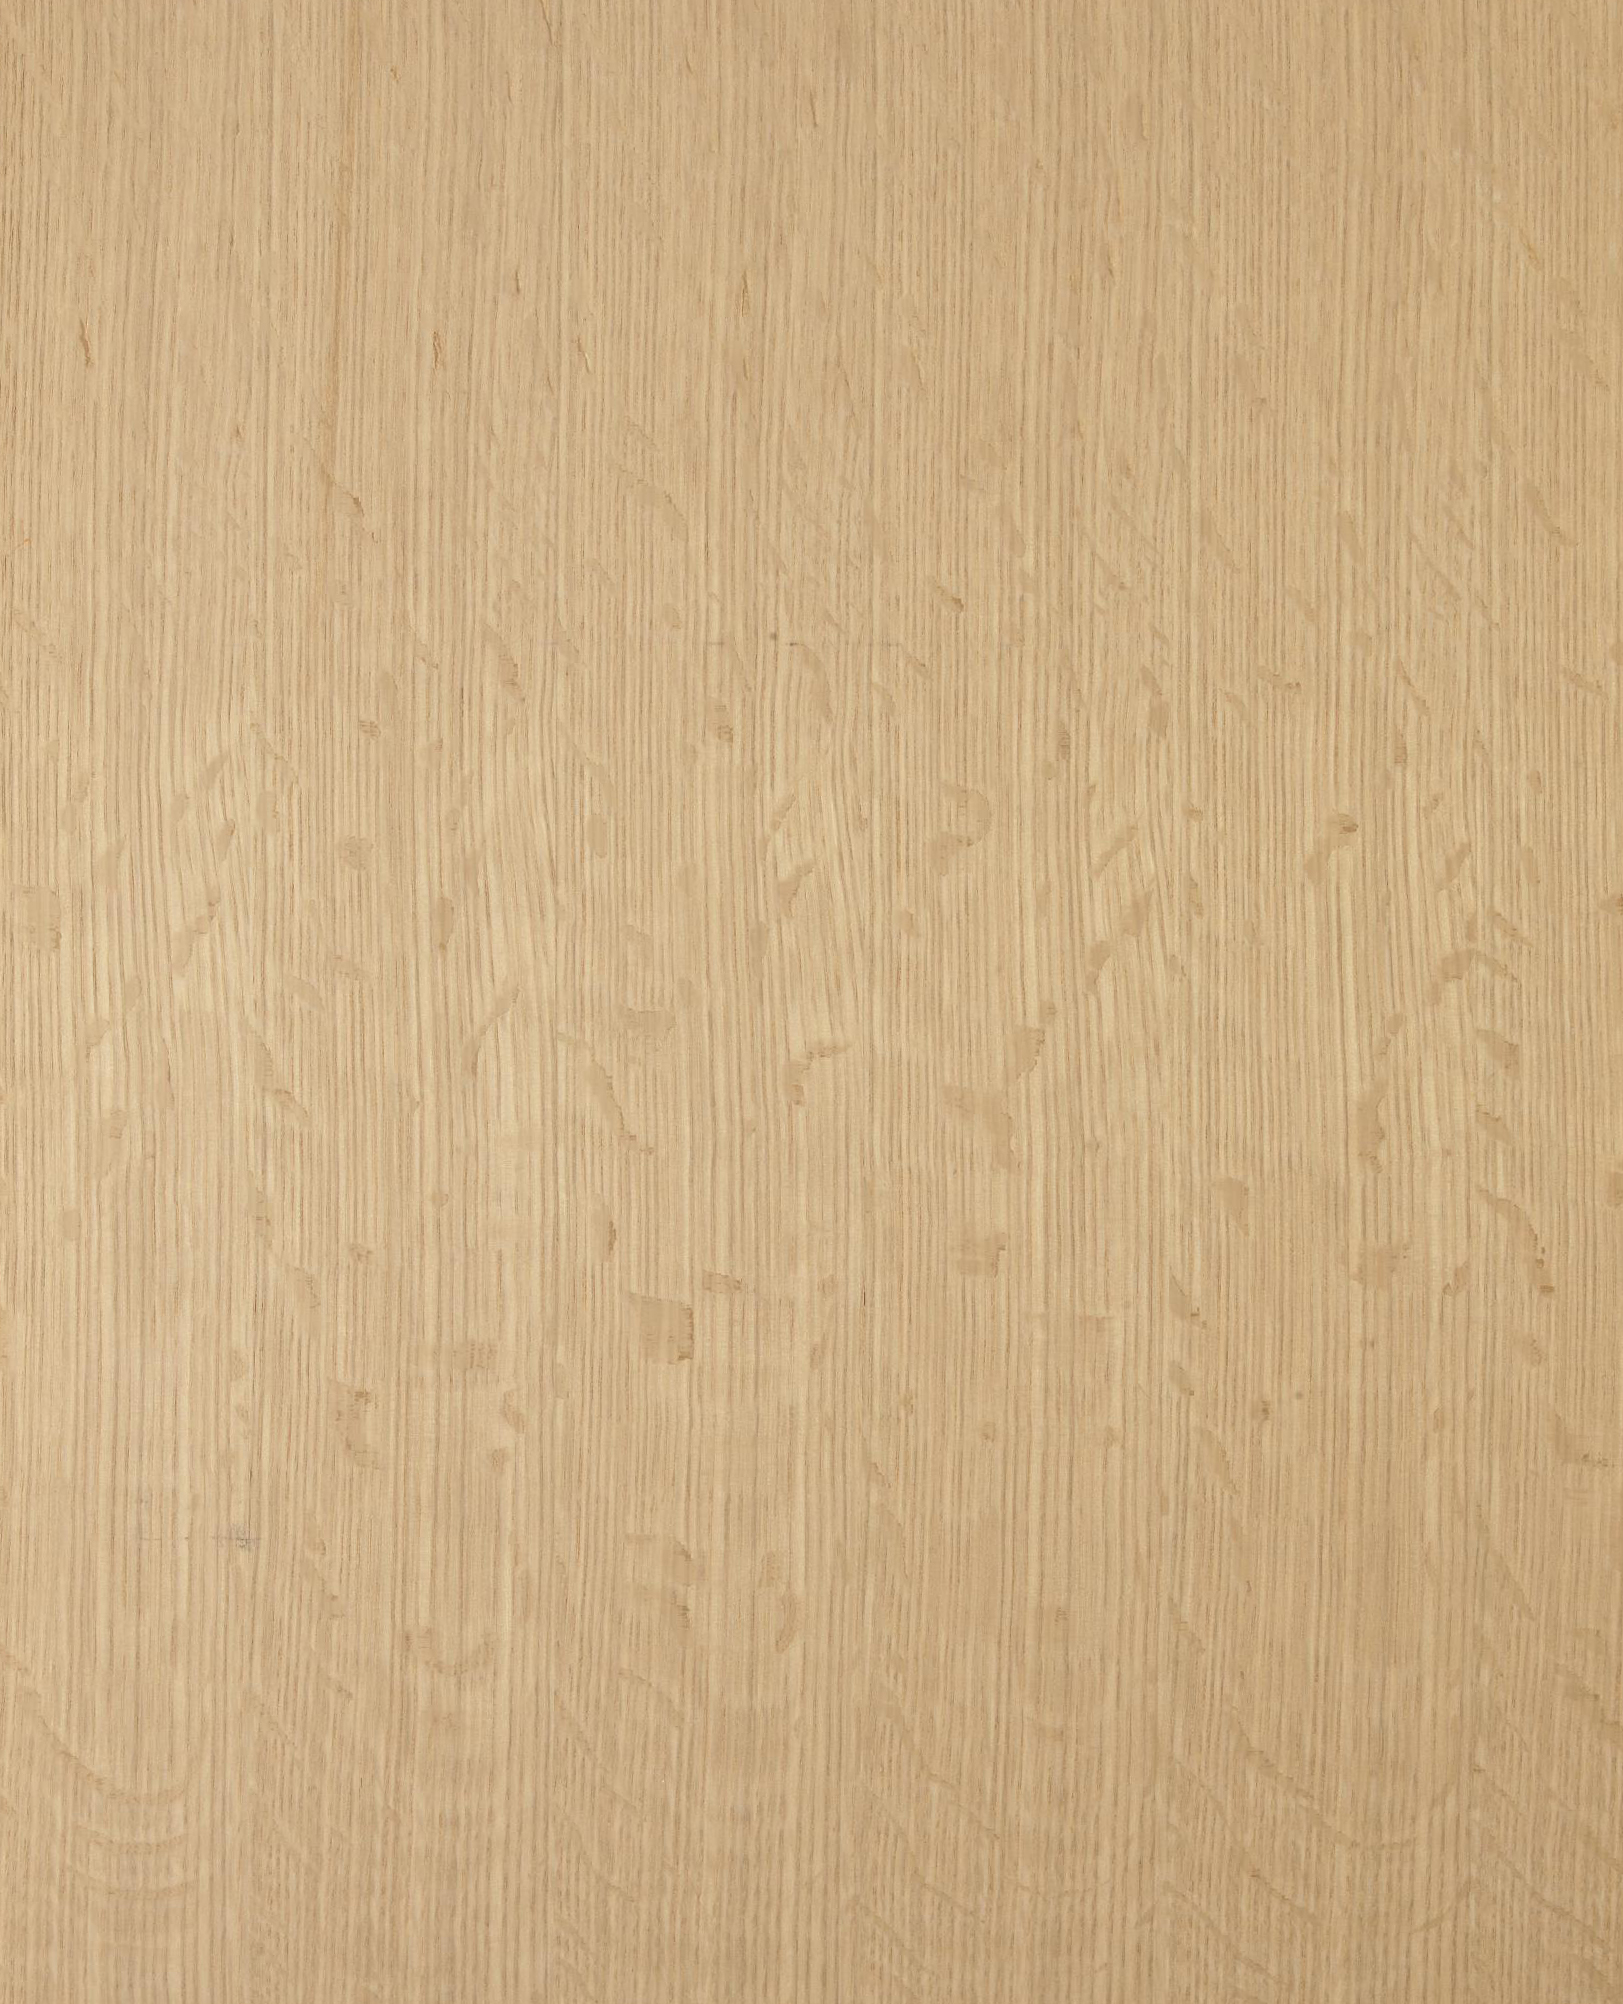 oak wood grain texture viewing gallery